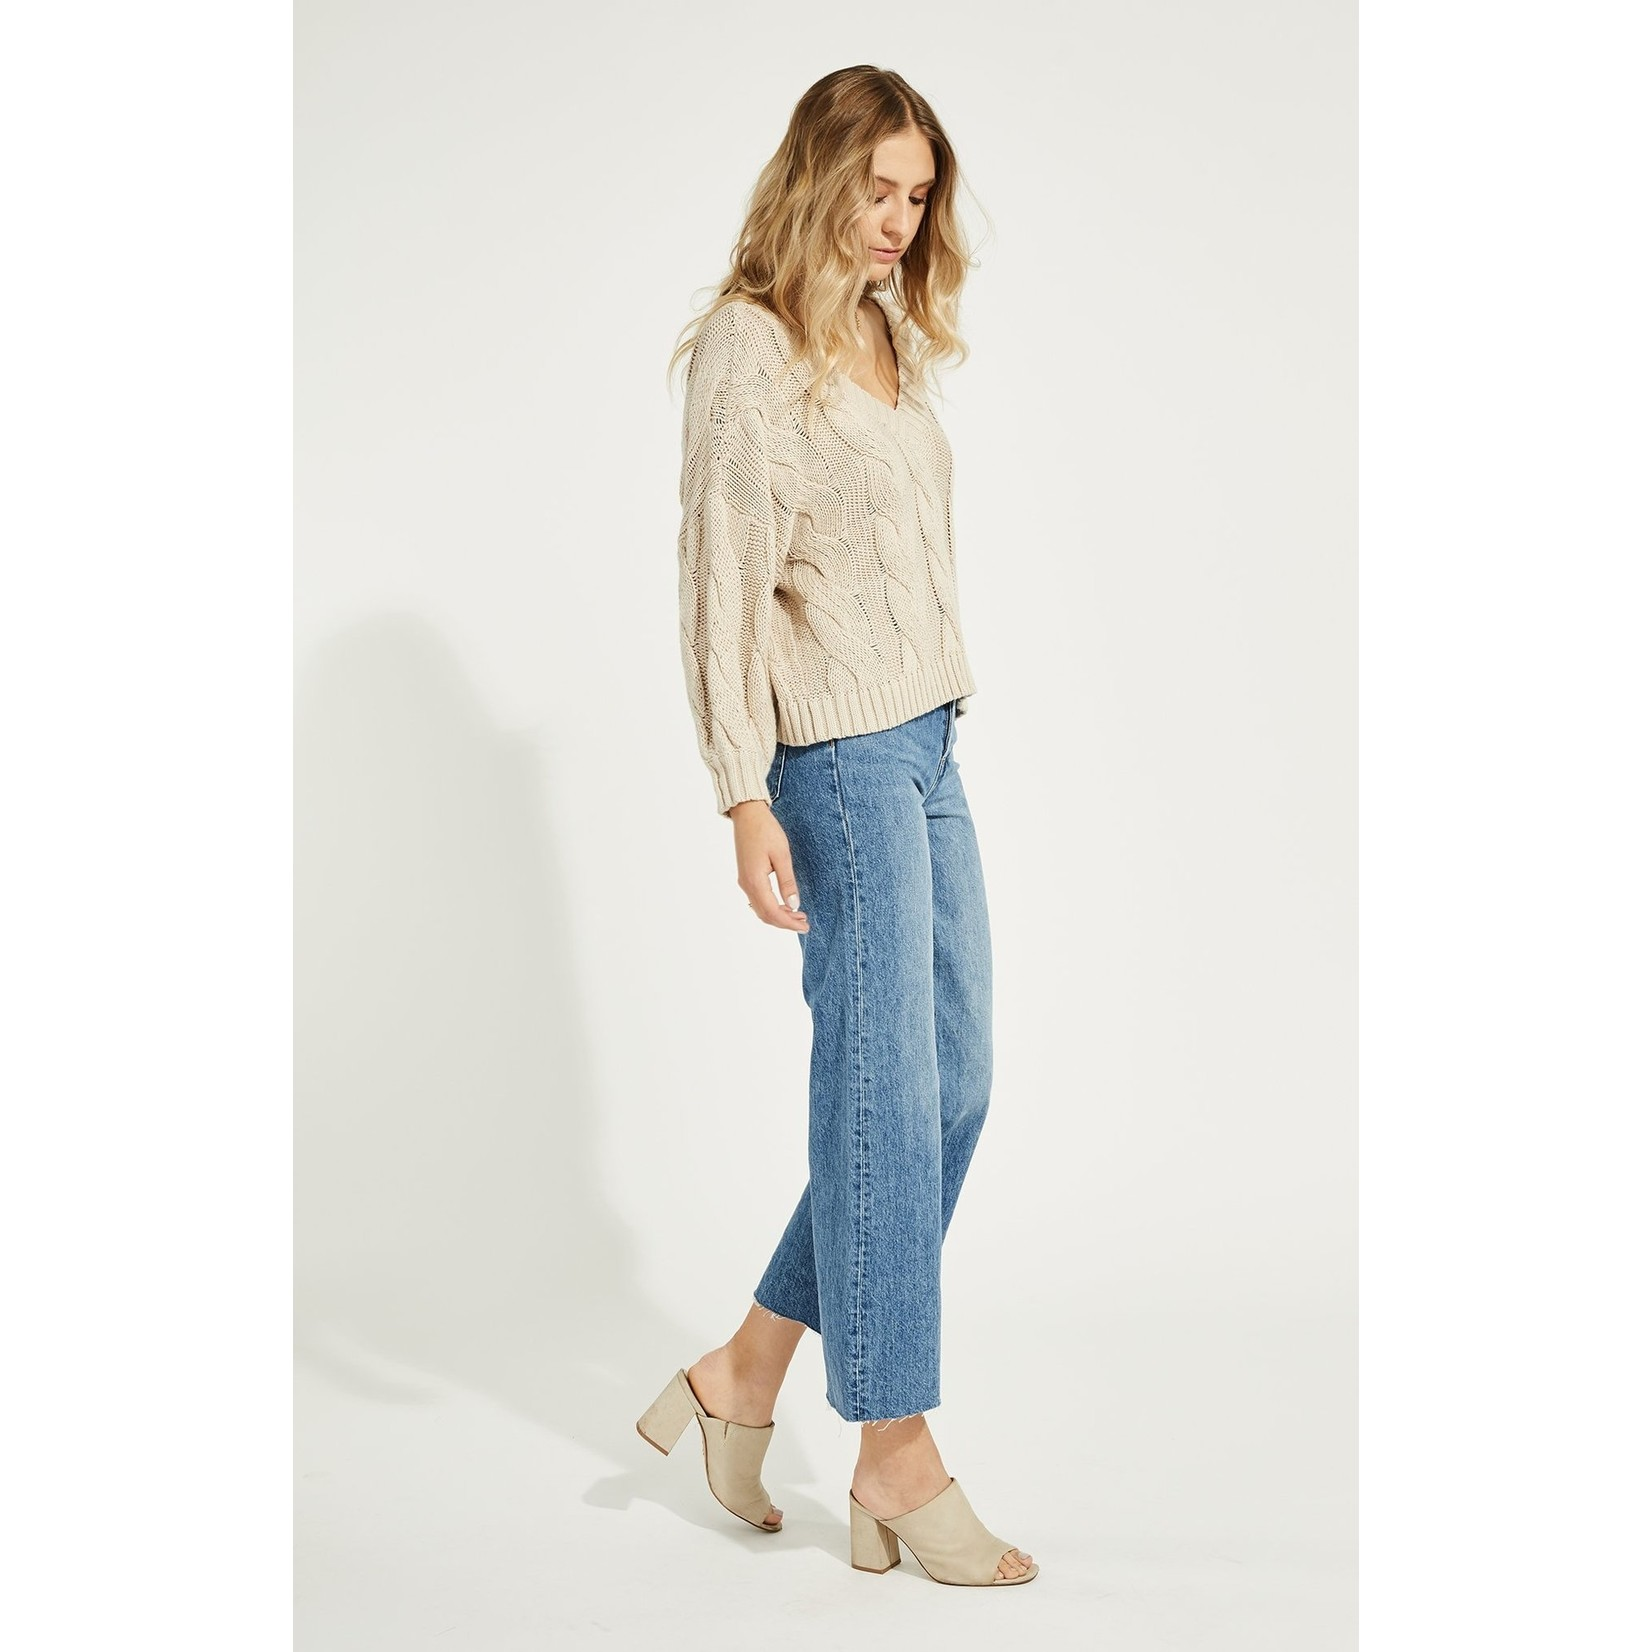 GENTLE FAWN HERITAGE PULLOVER